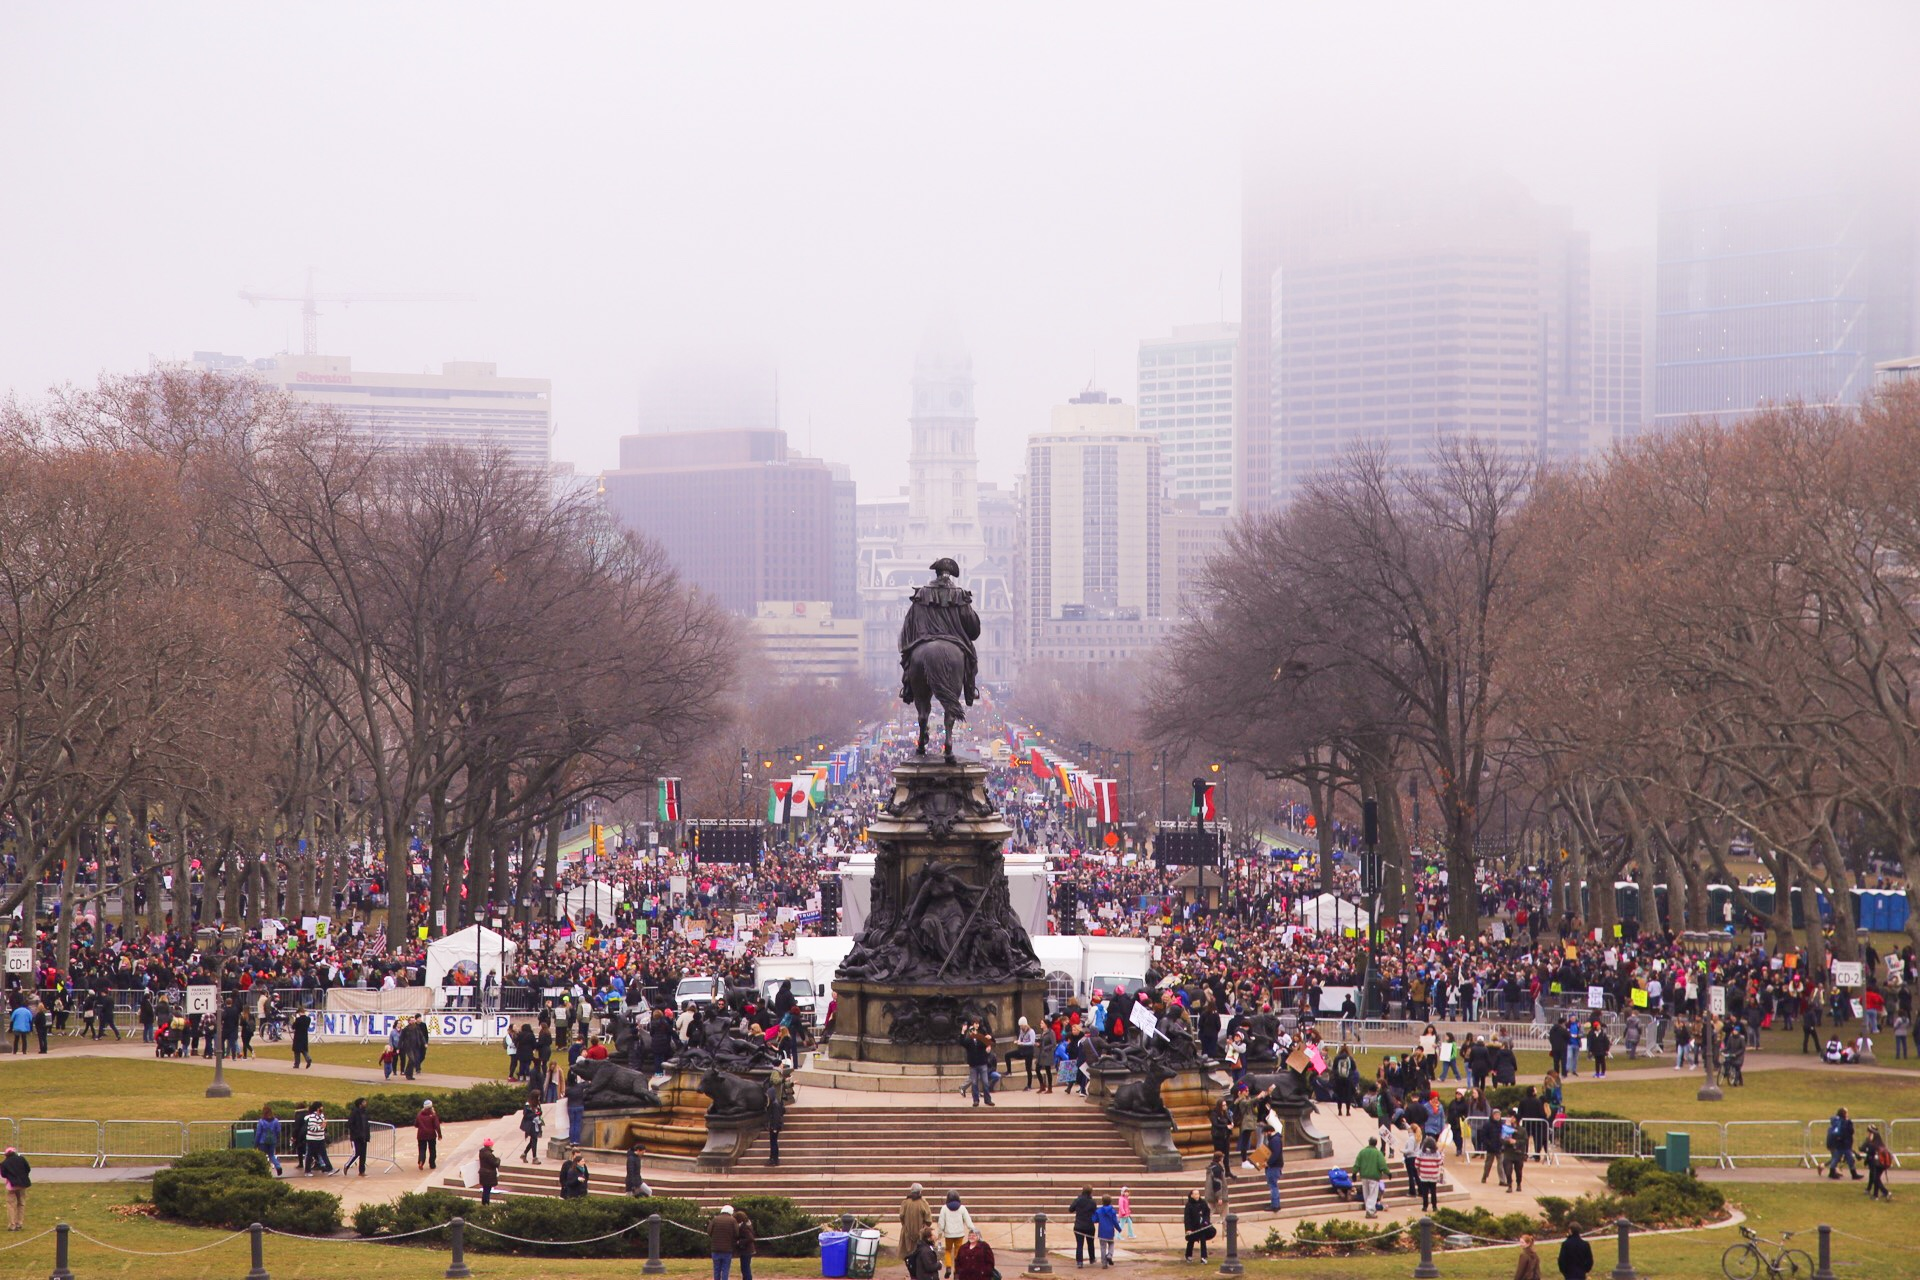 Looking down the Benjamin Franklin Parkway toward Center City with 50,000 people in attendance at the Women's March on Philadelphia.